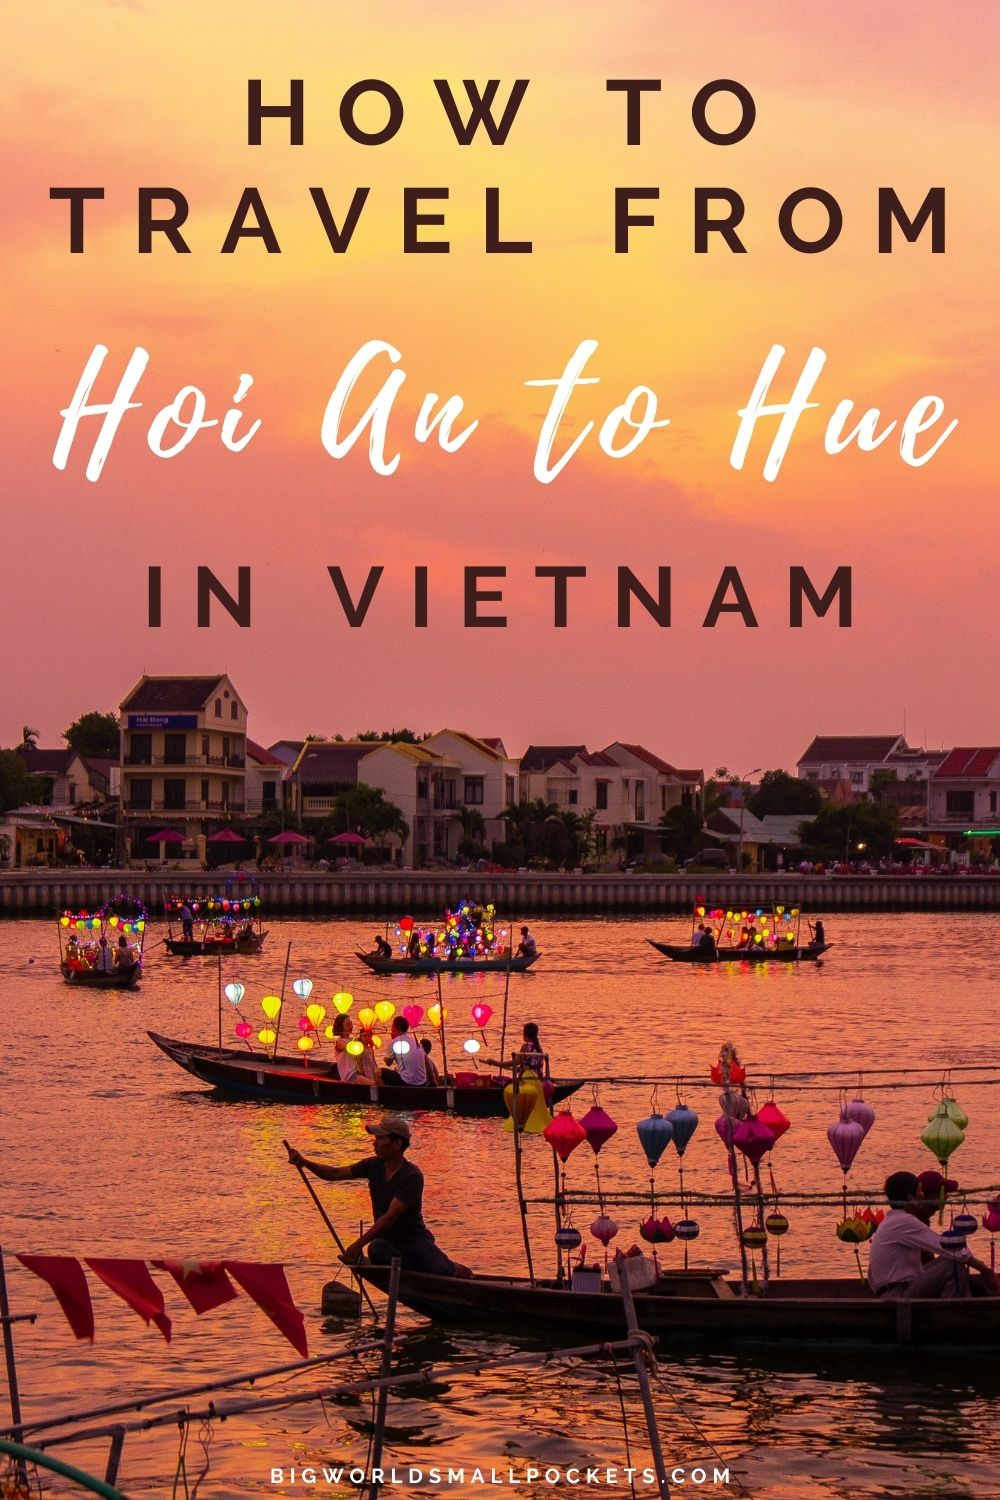 How to Travel Betweeen Hoi An and Hue in Vietnam